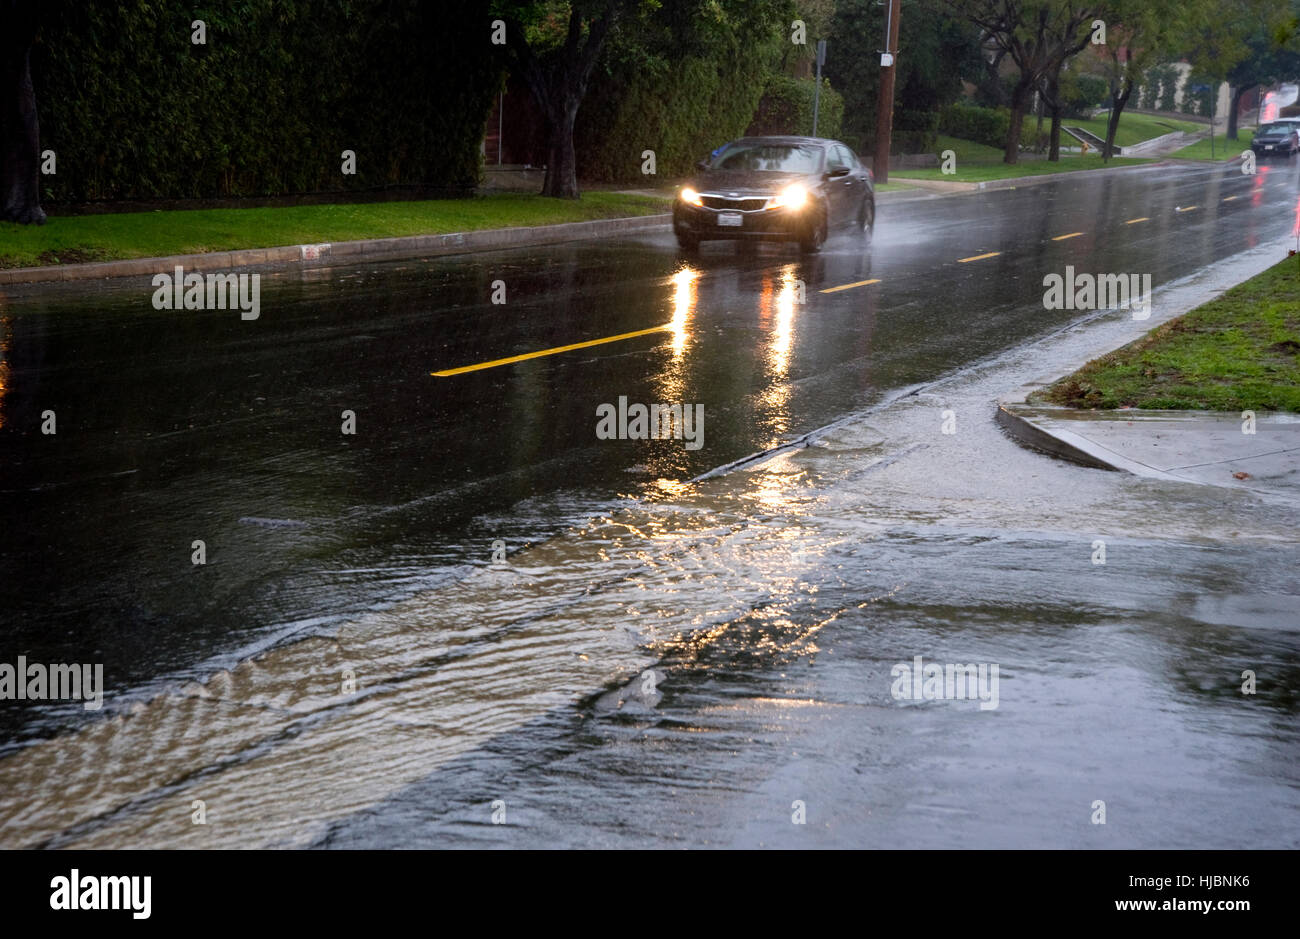 Car driving in rain on wet streets - Stock Image